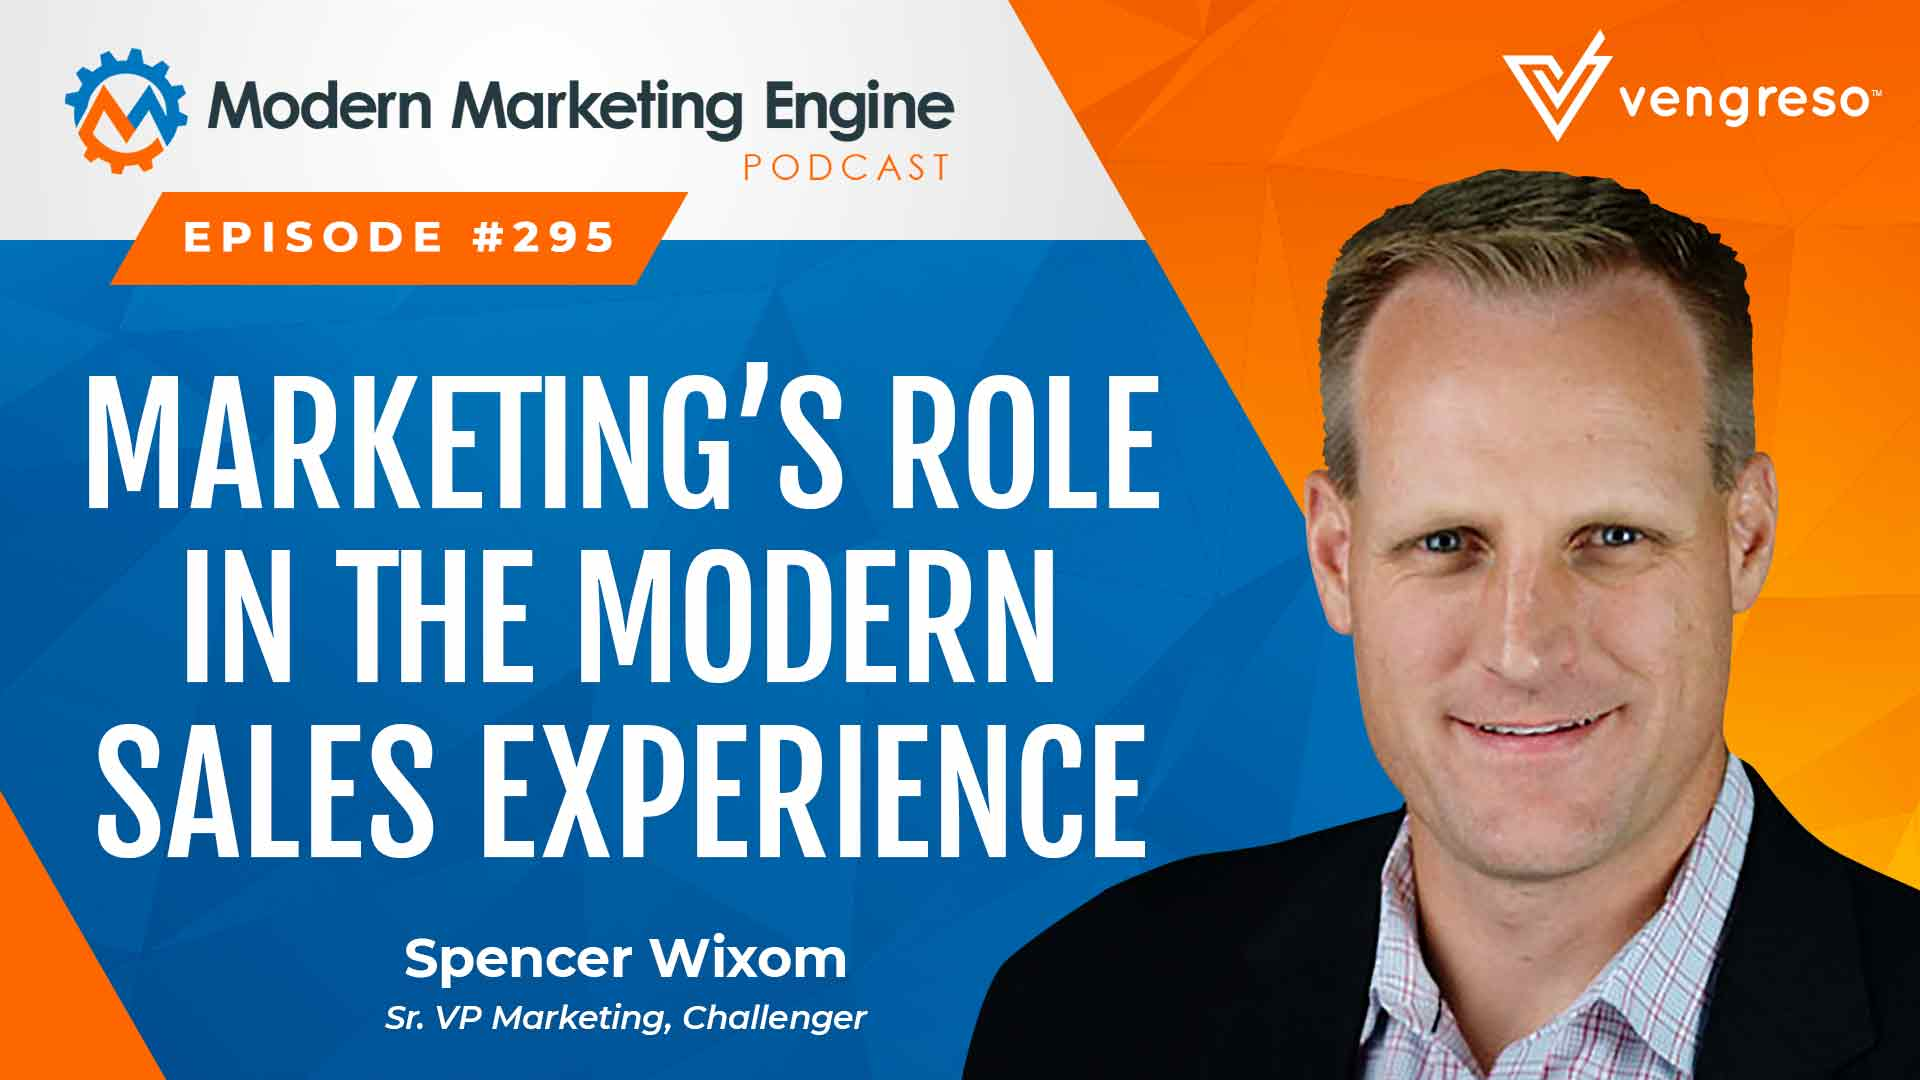 Marketing's Role in the Modern Sales Experience